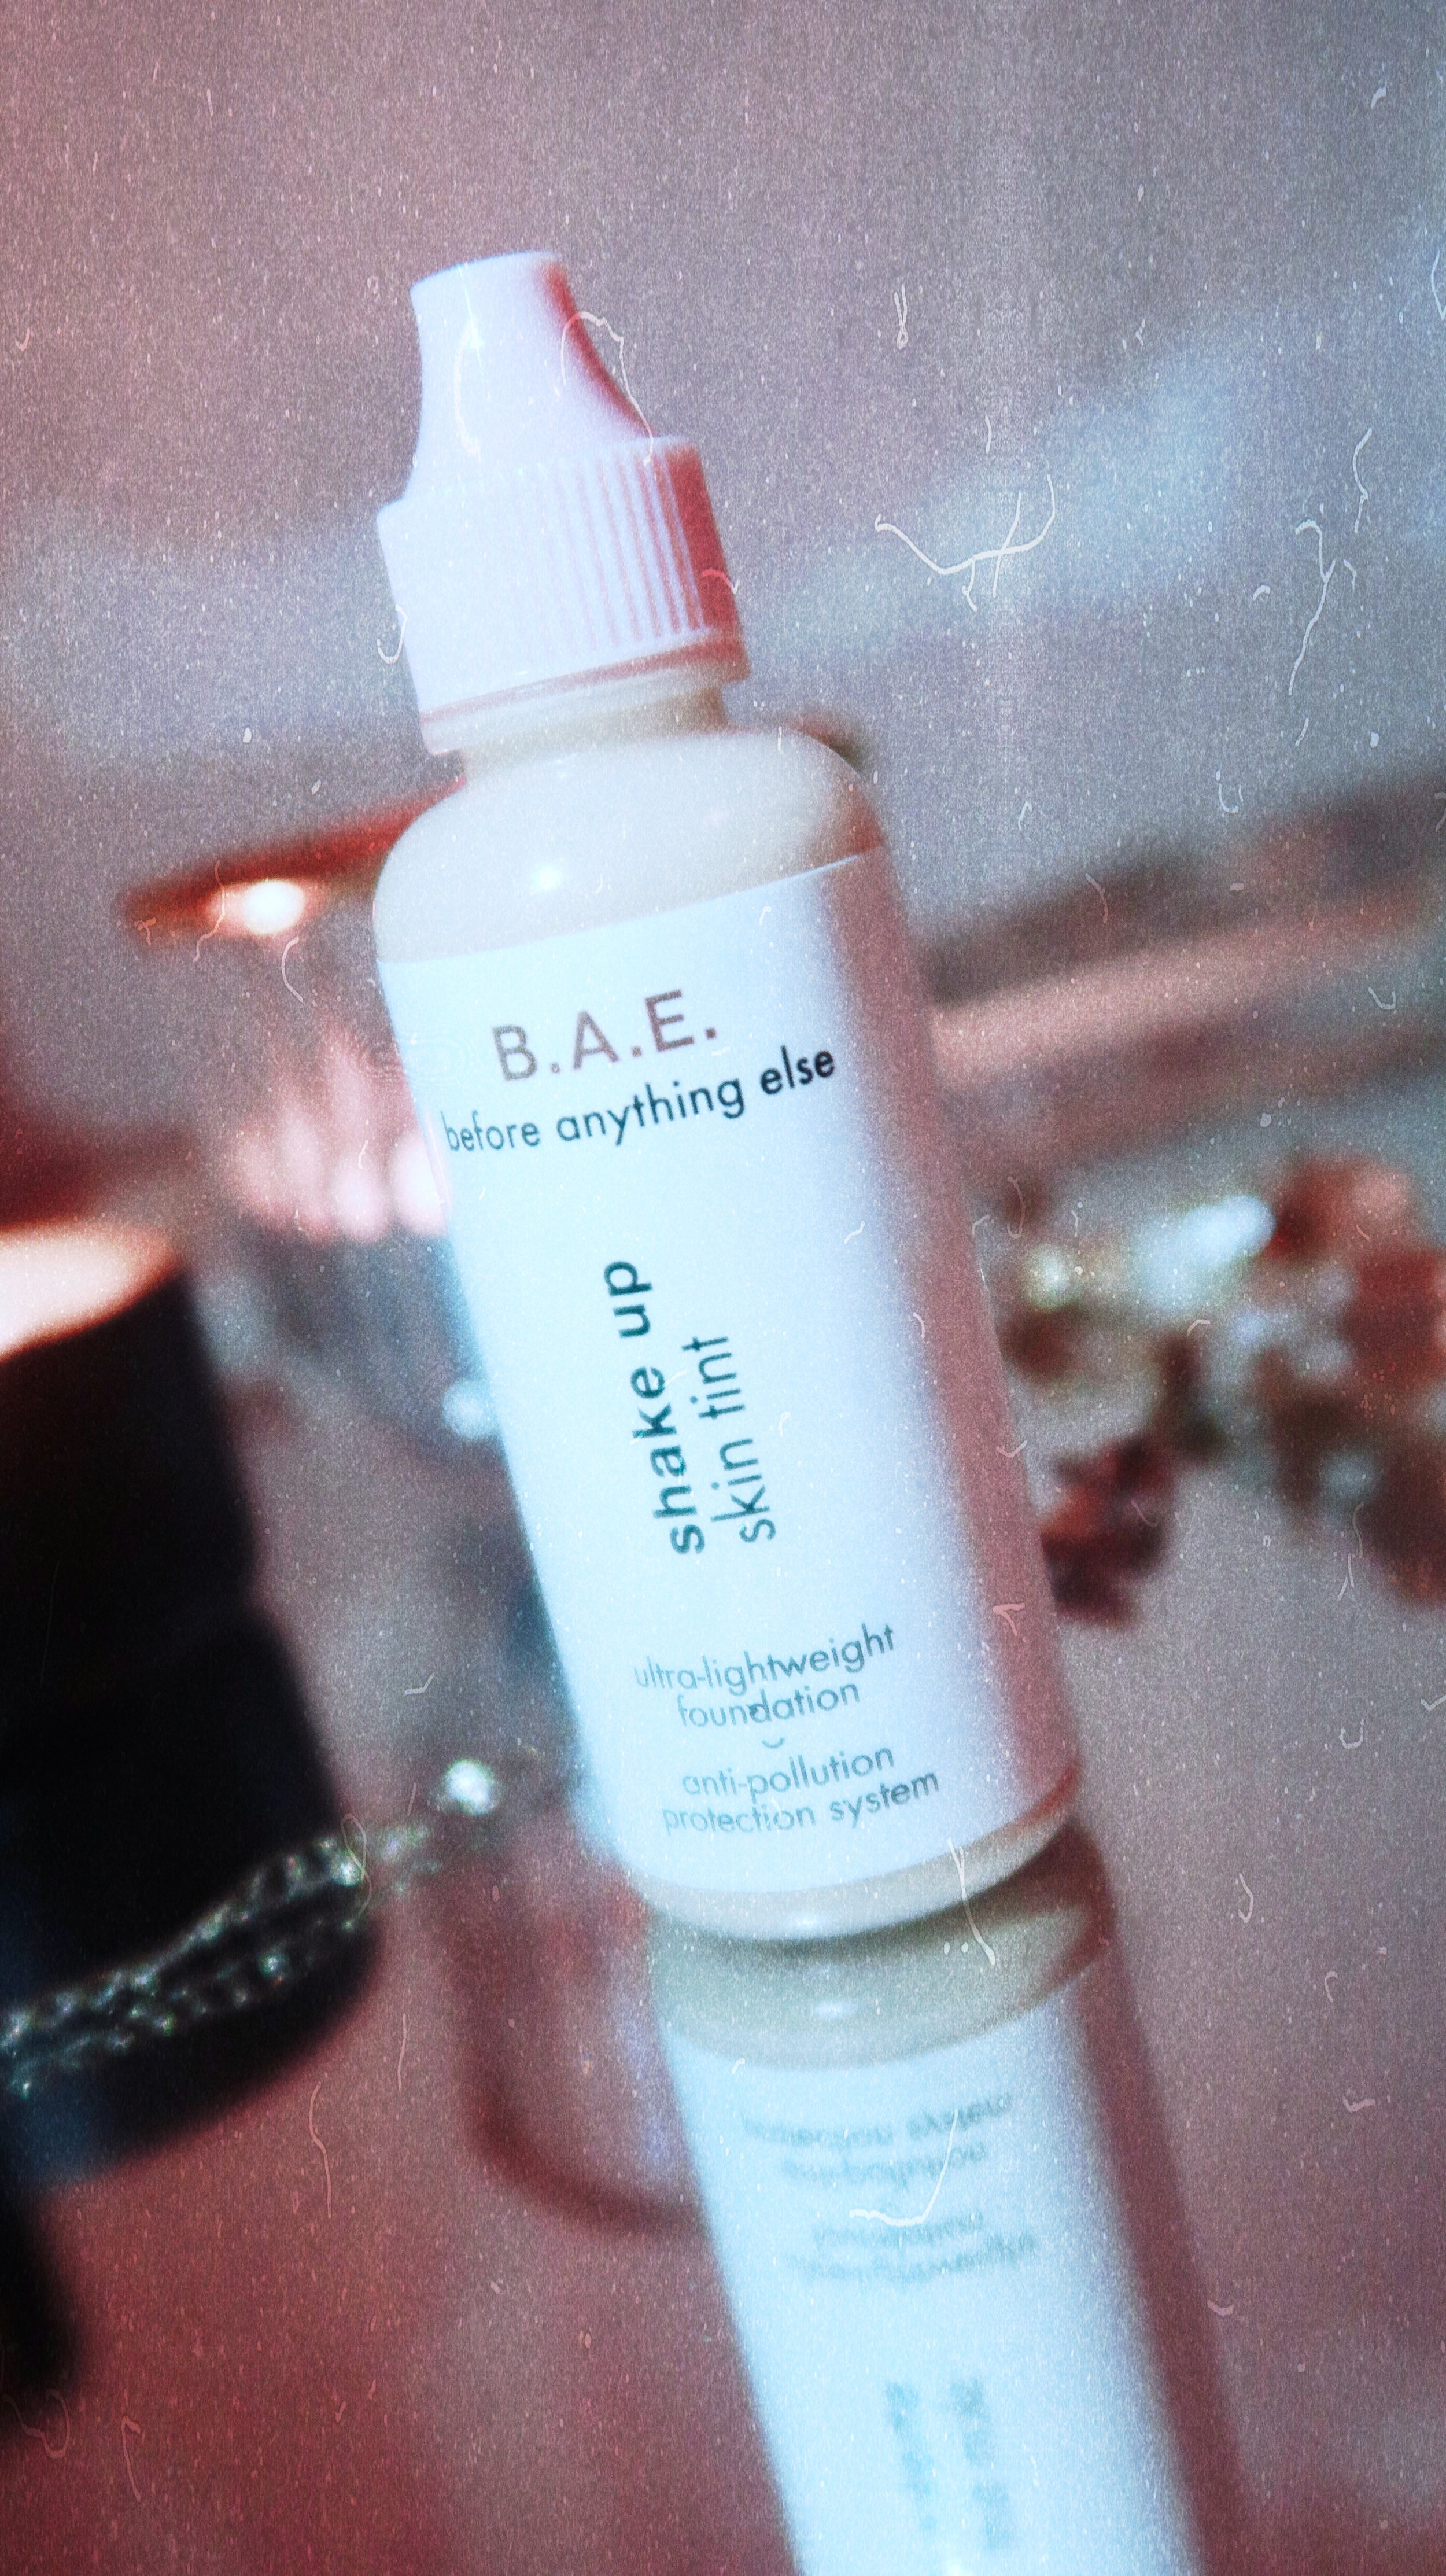 B.A.E. Shake up skin tint - Product description: Ultra-lightweight foundation - anti pollution protection system. Shake before use, dermatologically tested.